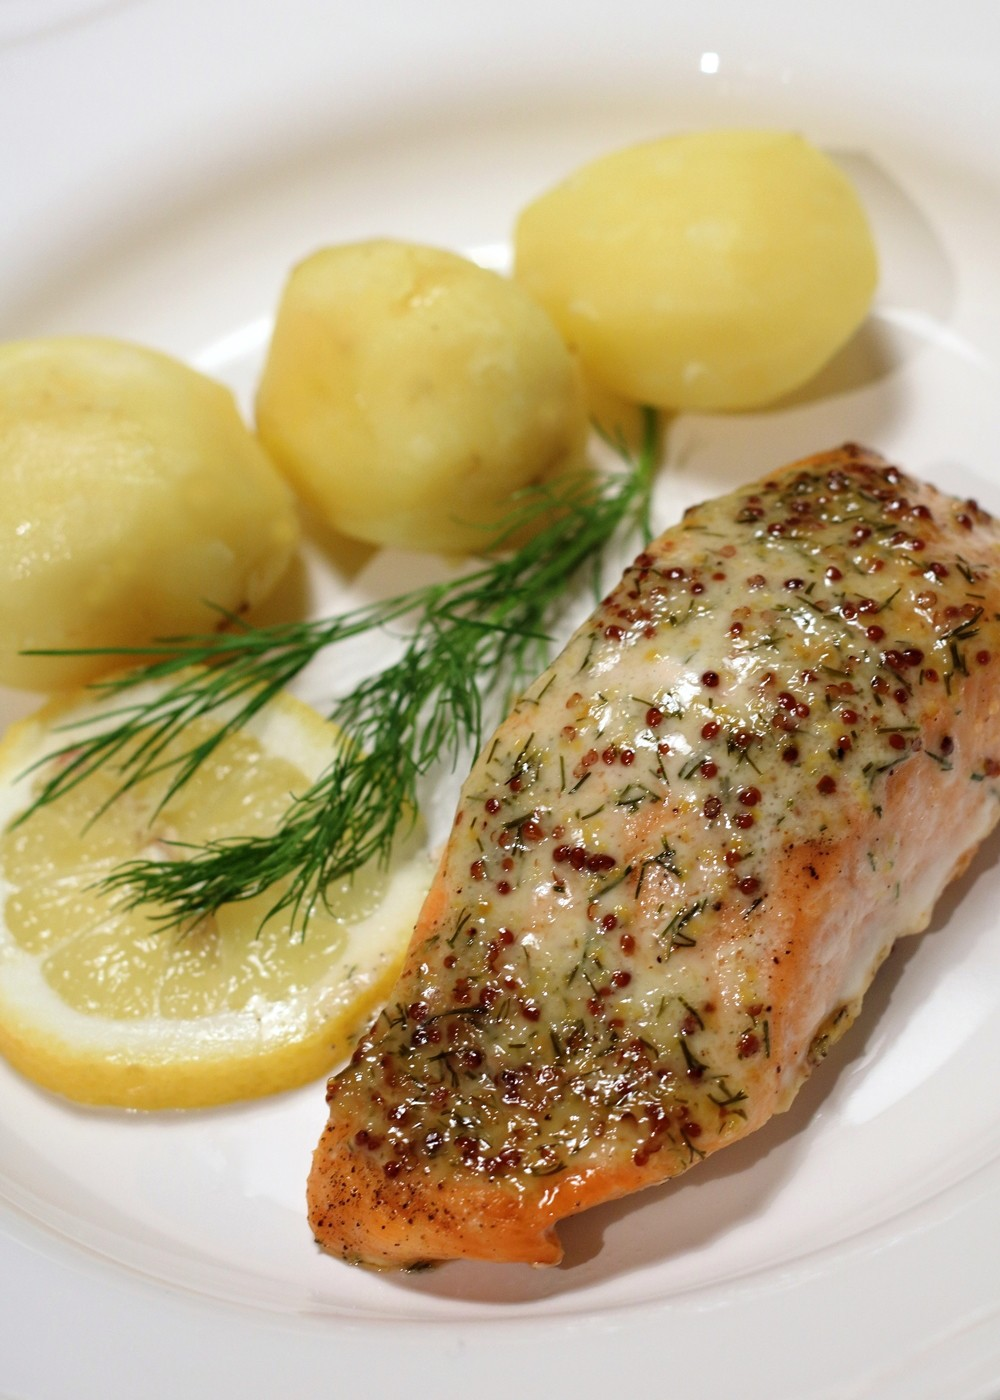 Lachs in Senf Dill Sauce000009